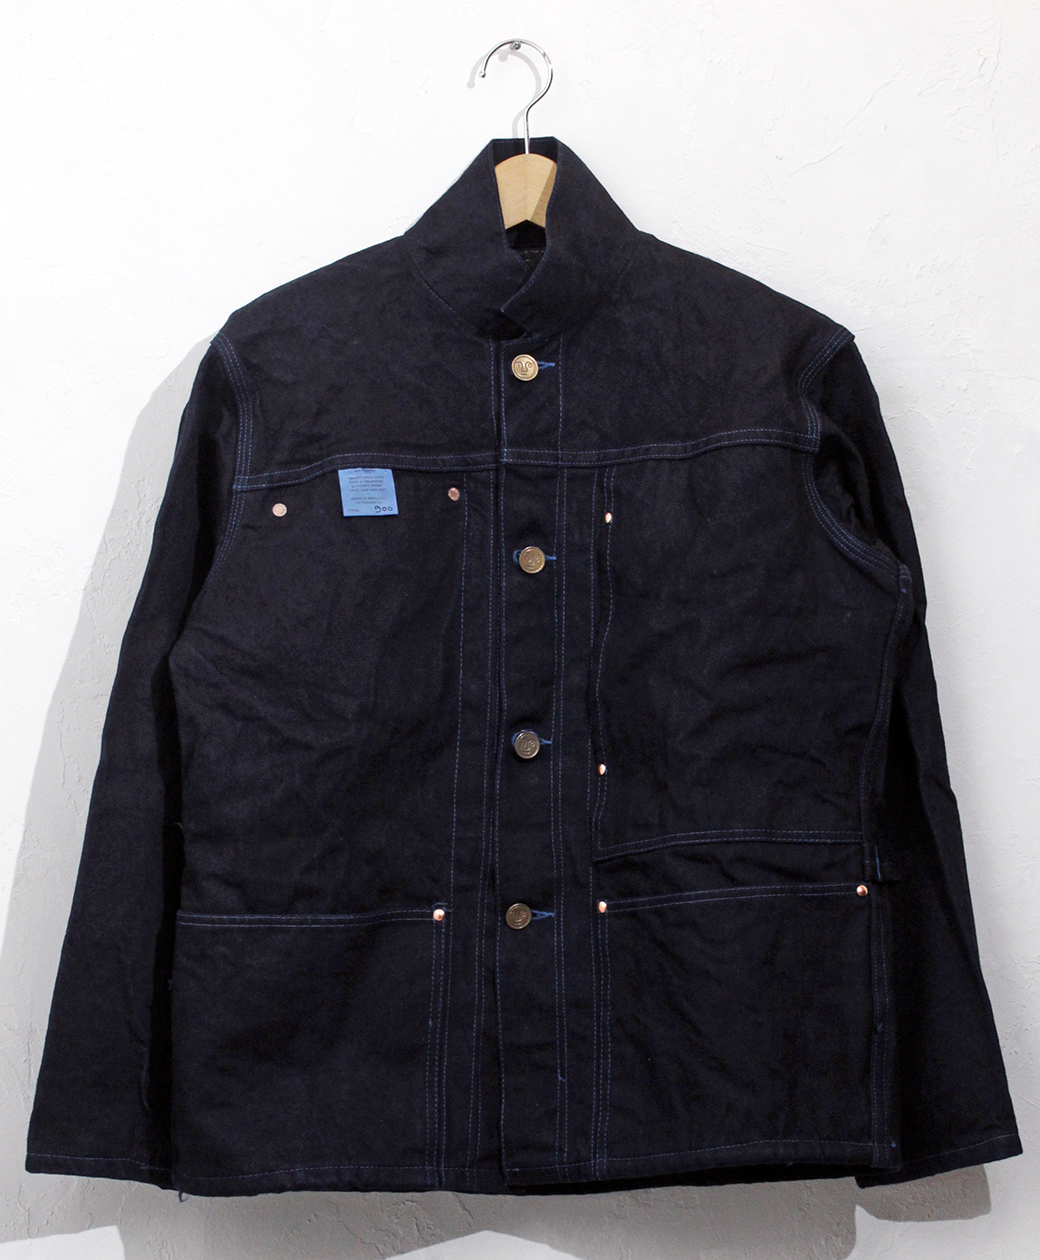 TENDER Co. 【10TH Anniversary LIMITED EDTION】TYPE 900 DONEGAL BLANKET LINED JACKET WORD DENIM